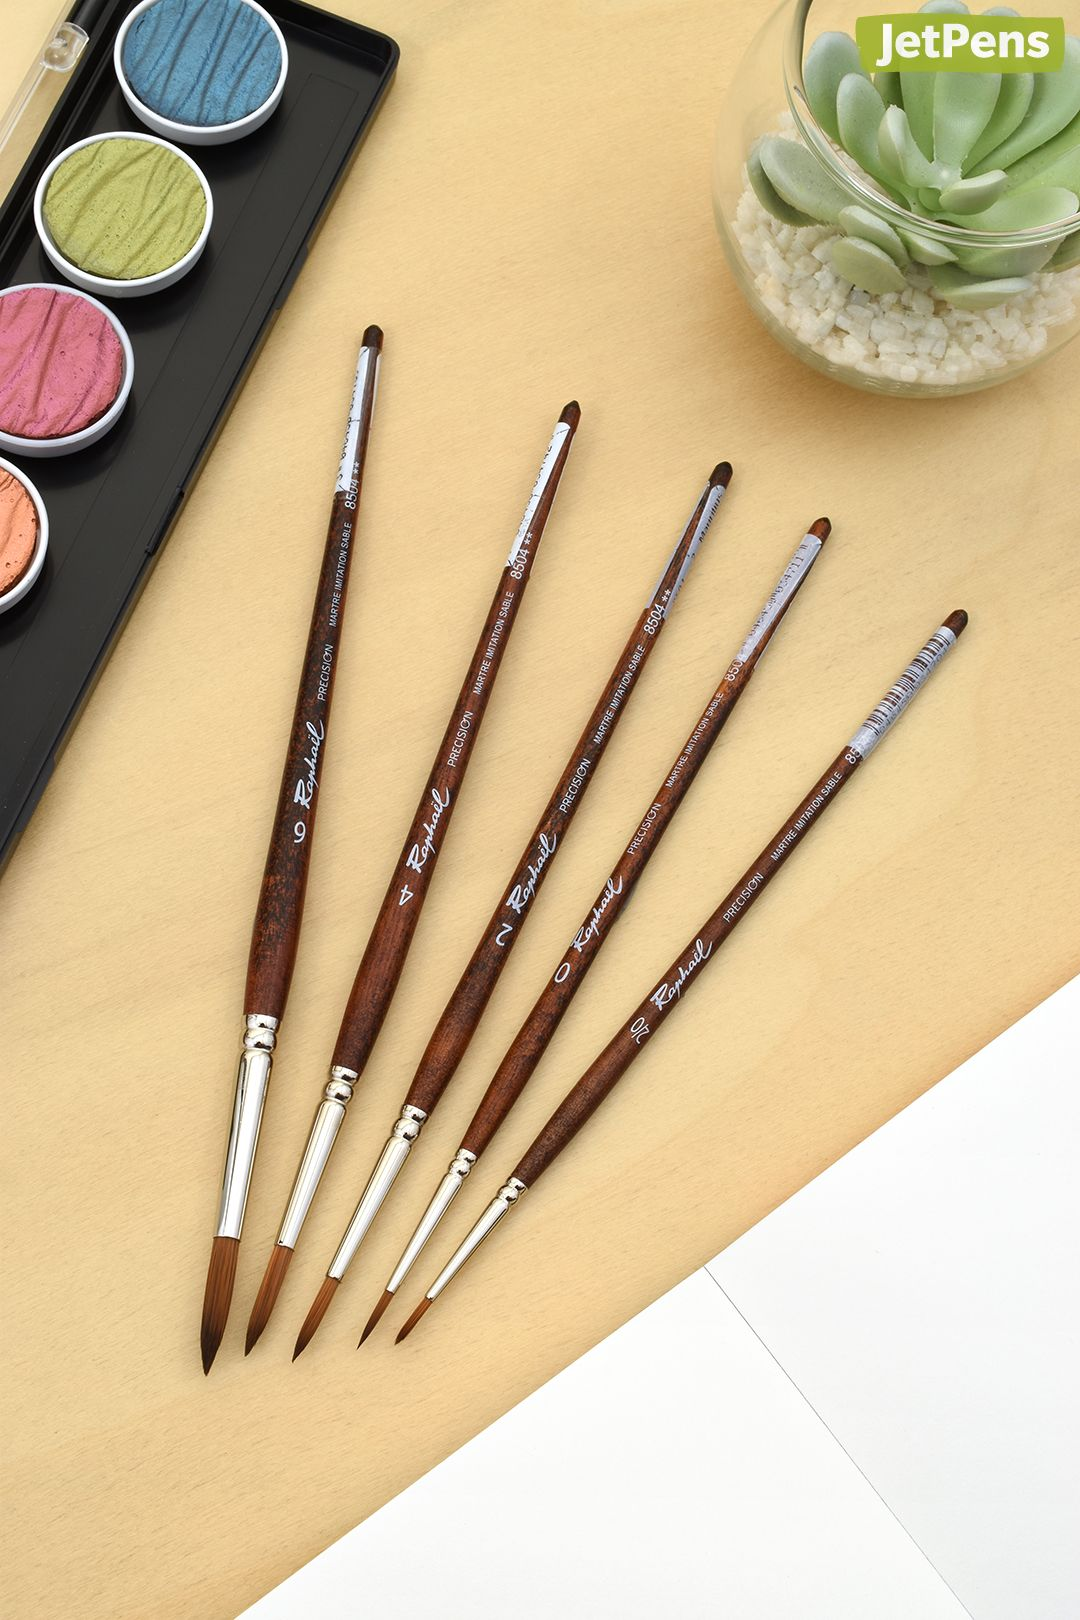 Made with synthetic bristles that imitate the precise